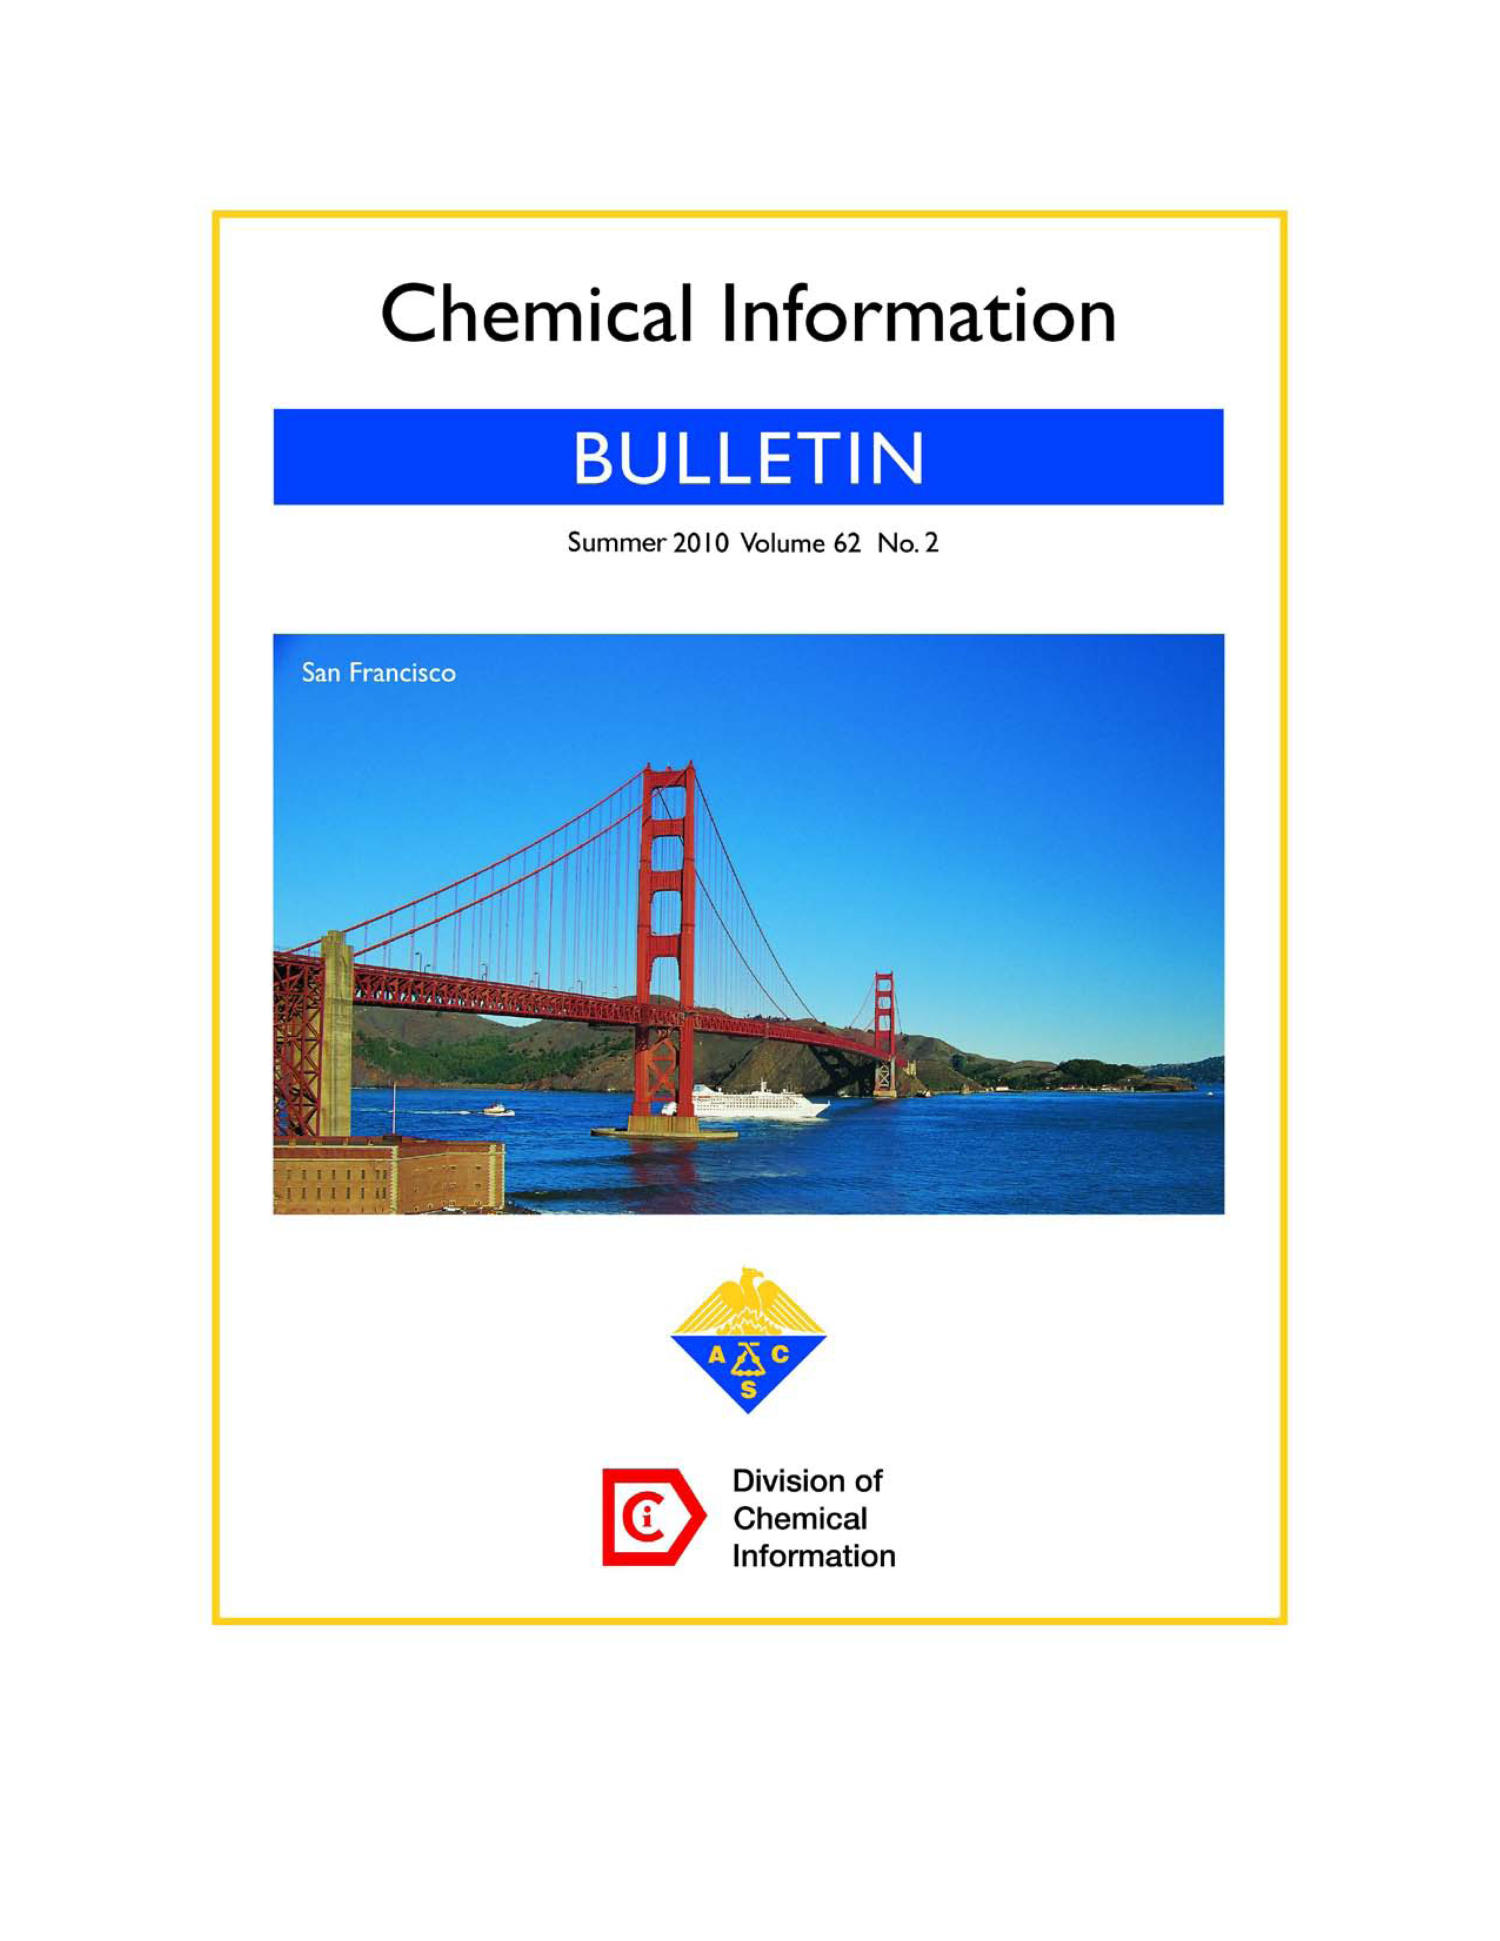 Chemical Information Bulletin, Volume 62, Number 2, Summer 2010                                                                                                      Front Cover